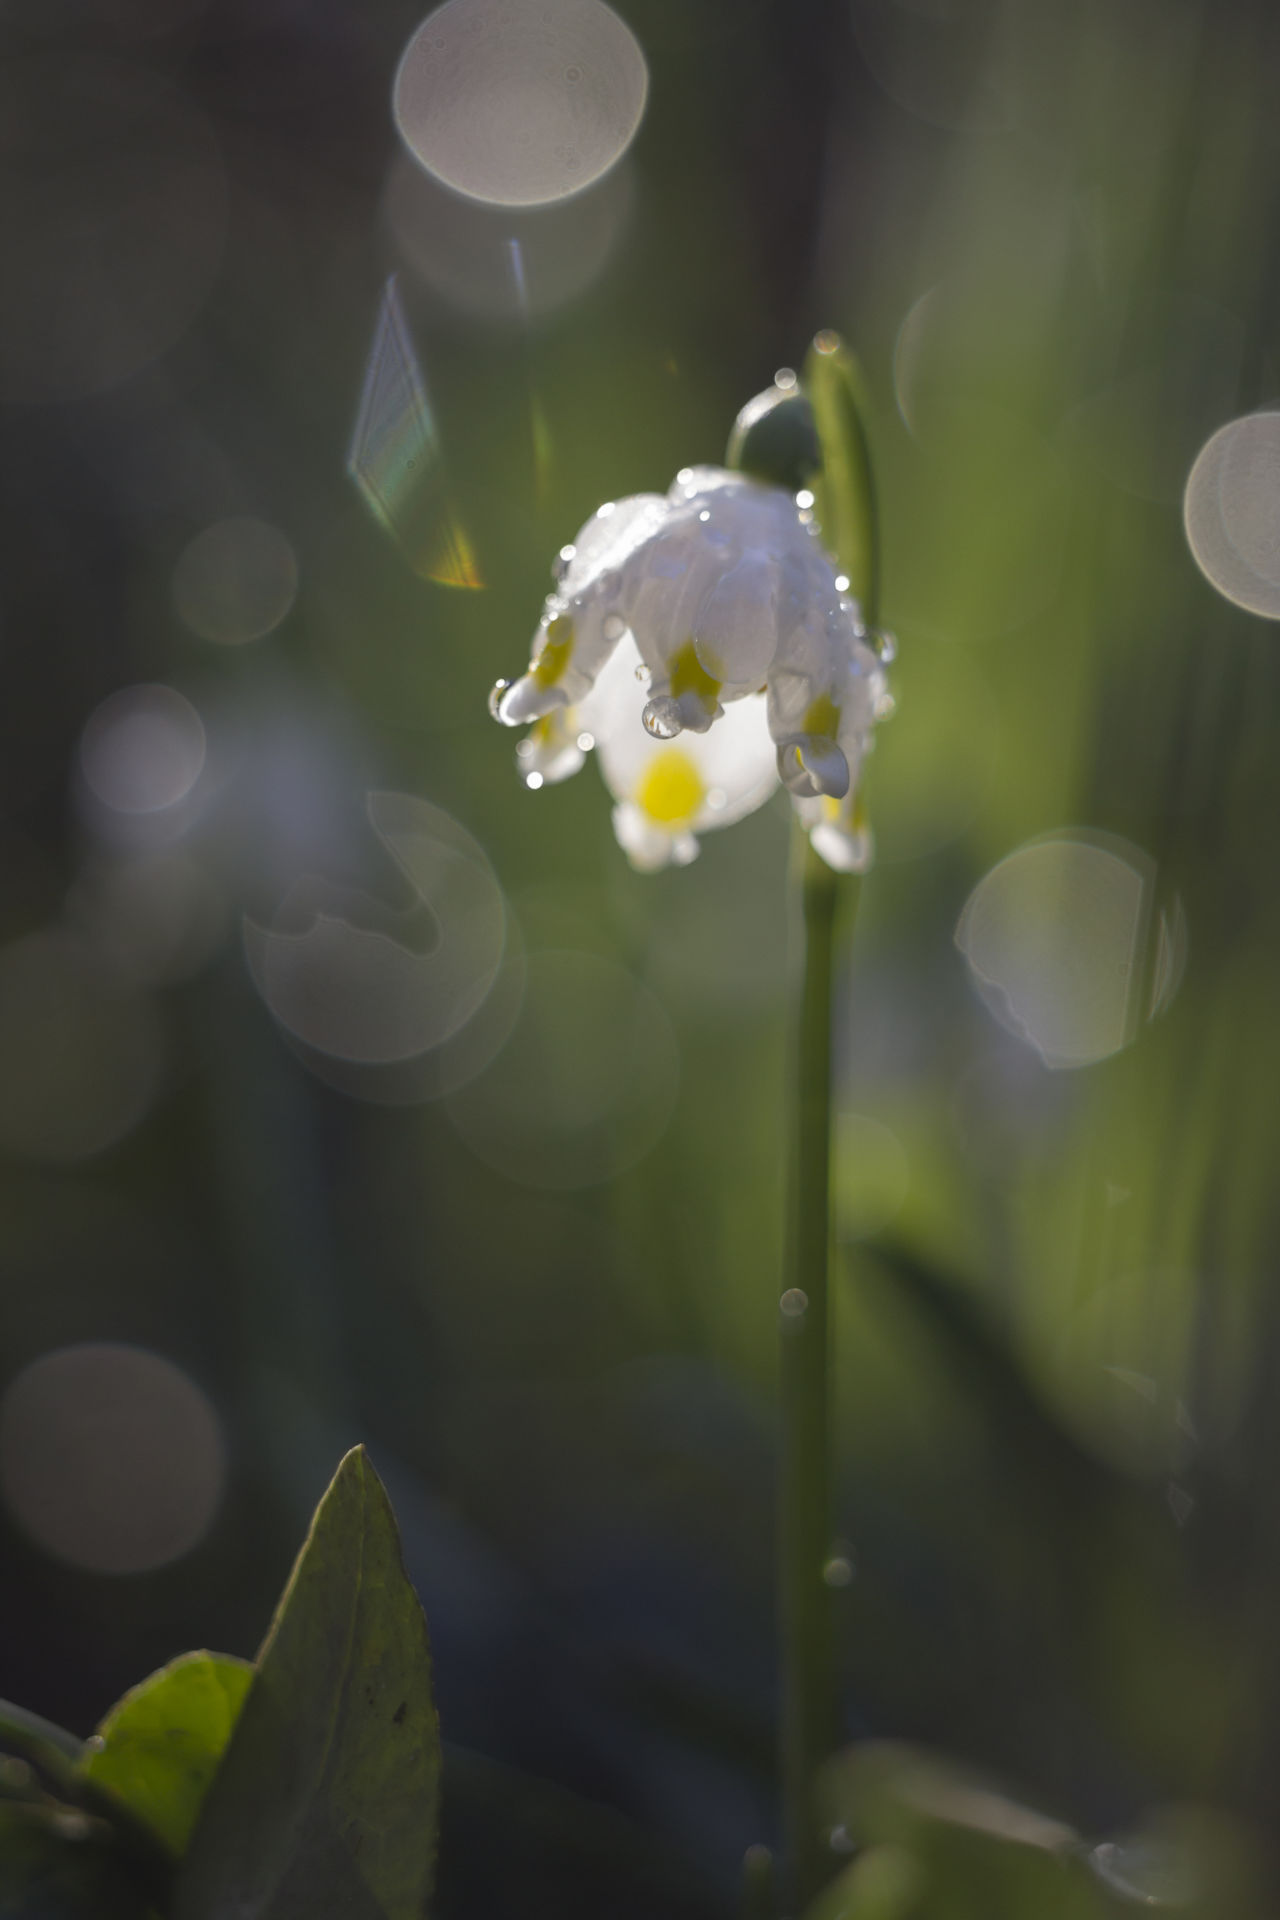 Blossom Bokeh Botany Close-up Flower Flower Head Fragility Freshness Growth Leucojum Leucojum Vernum Petal Springtime